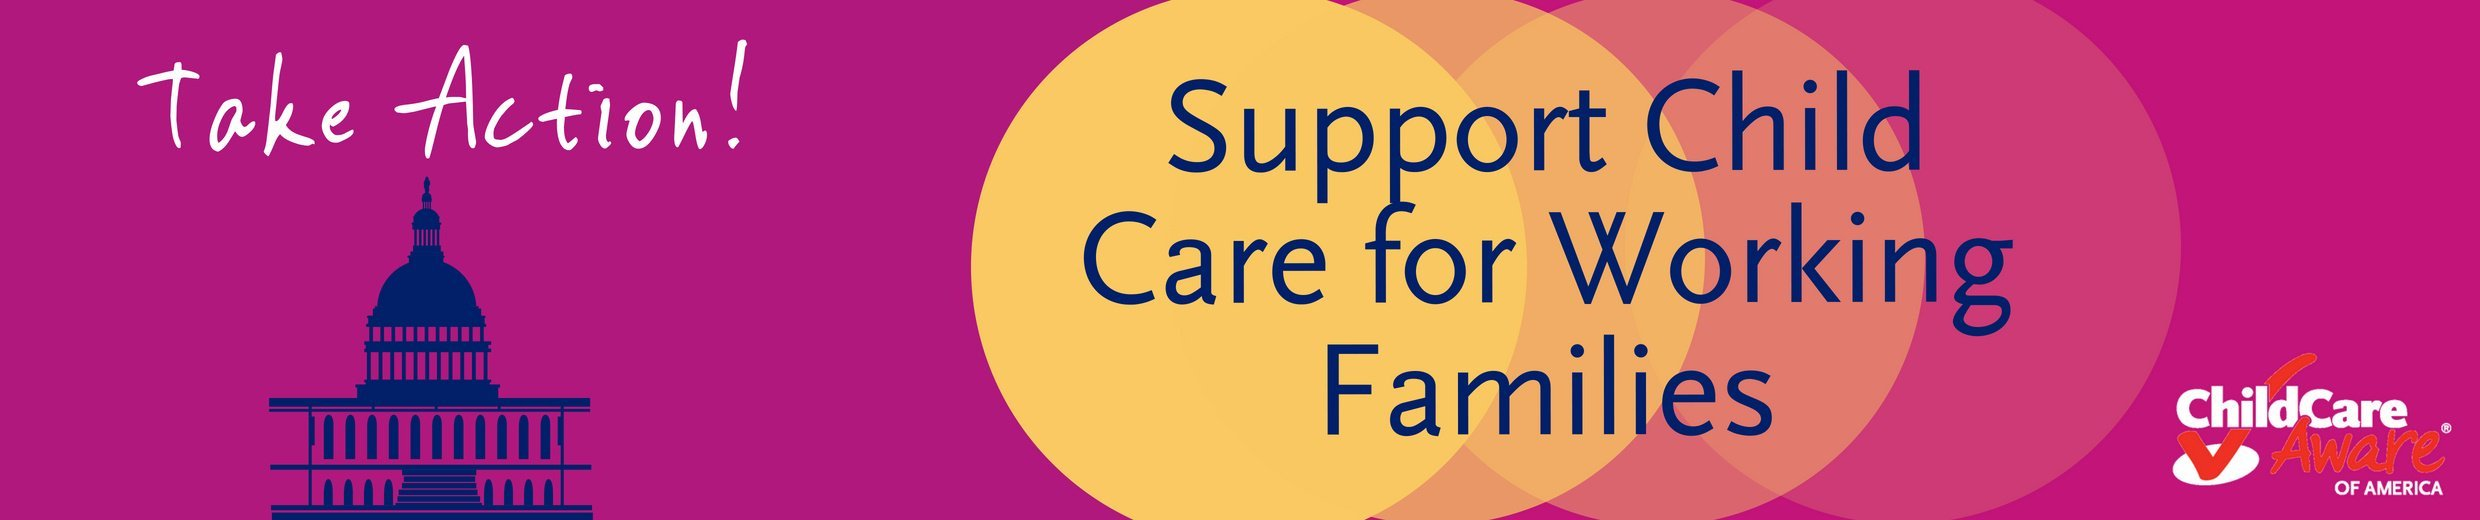 Take Action! Support Child Care for Working Families